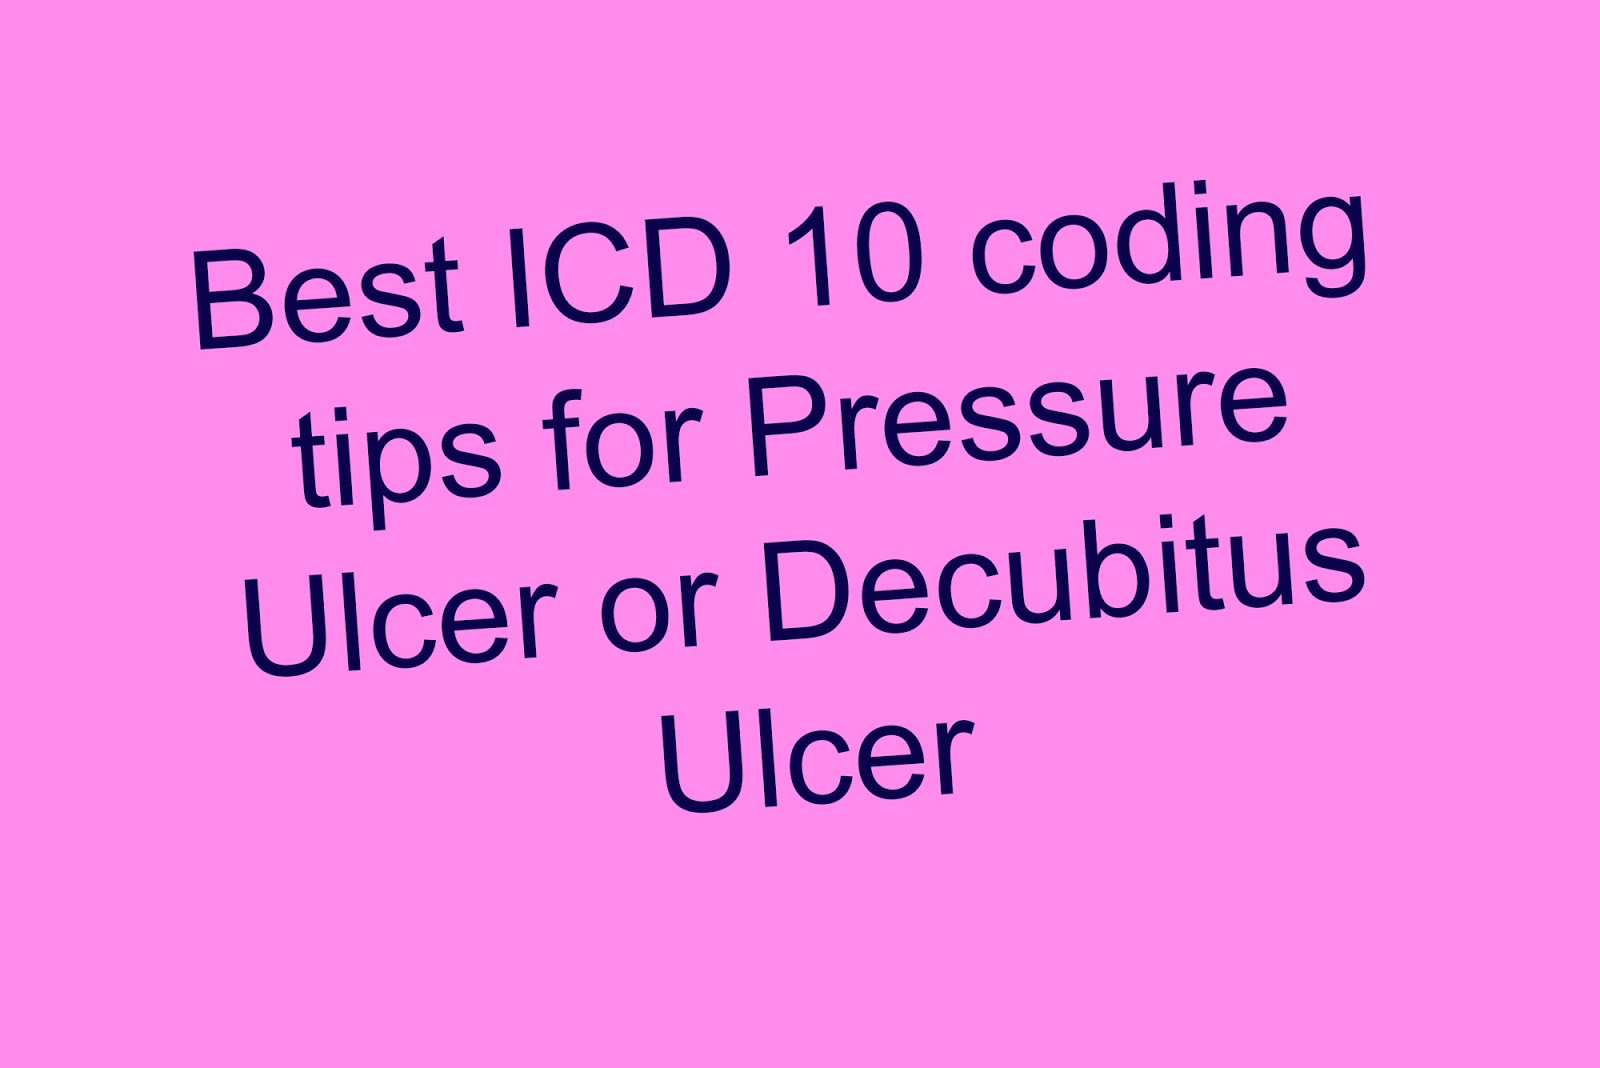 100 tips for icd 10 pcs coding - Easy Guide To Code Icd 10 Codes For Pressure Ulcer Or Decubitus Ulcer